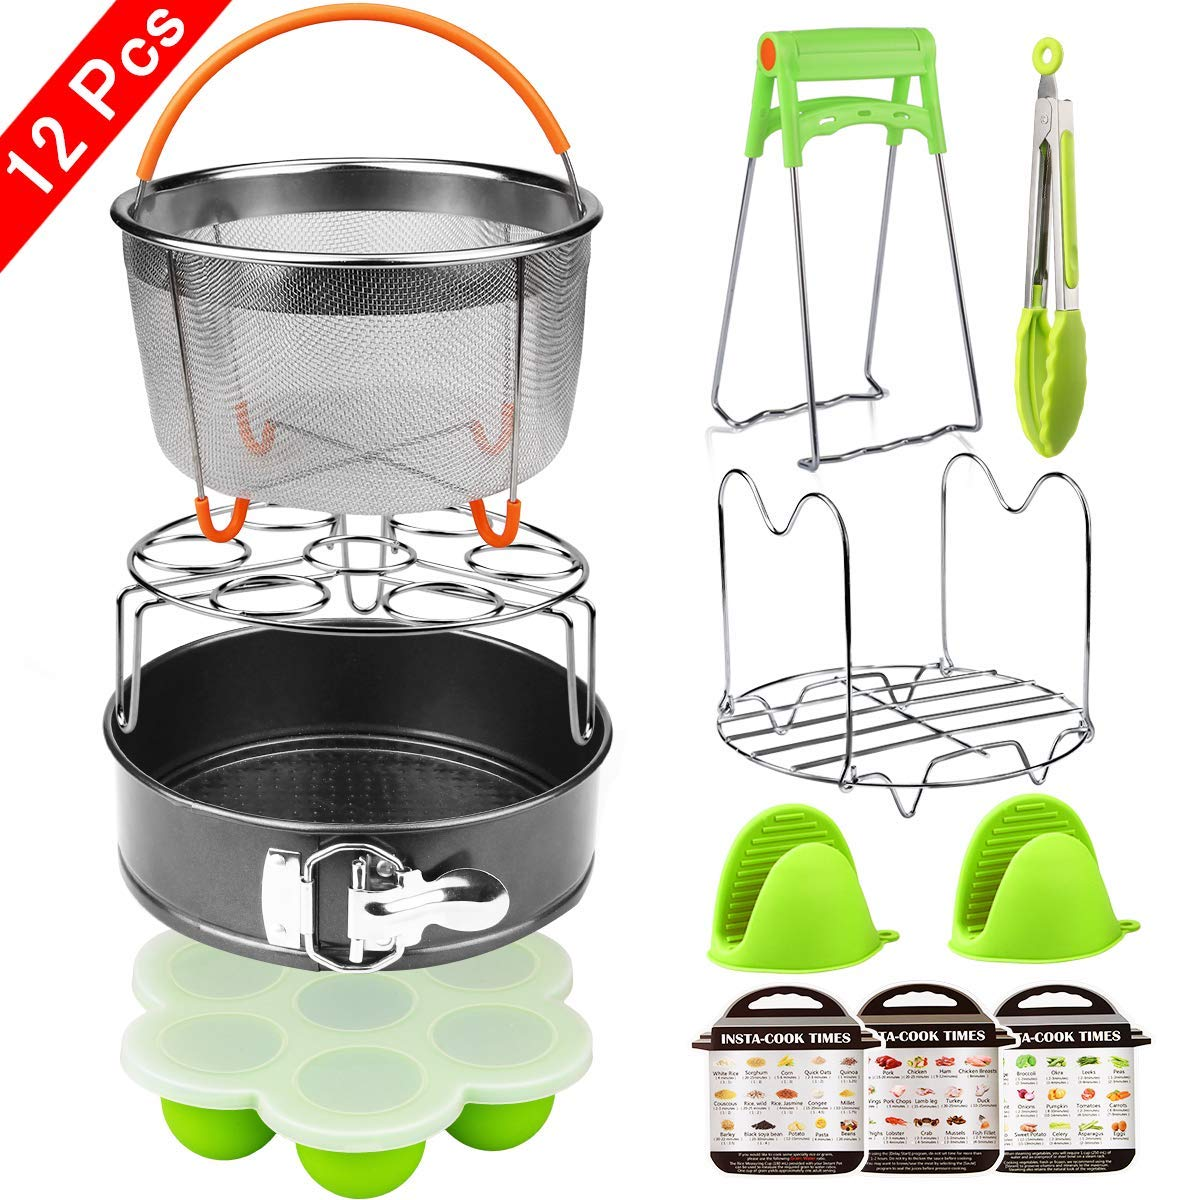 Aiduy 12 Pieces Pressure Cooker Accessories Set Compatible with Instant Pot 6,8Qt-Steamer Basket,Non-stick Springform Pan,Egg Bites Mold, Egg Rack, Steamer Trivet, Kitchen Tongs,3 Cheat by Aiduy